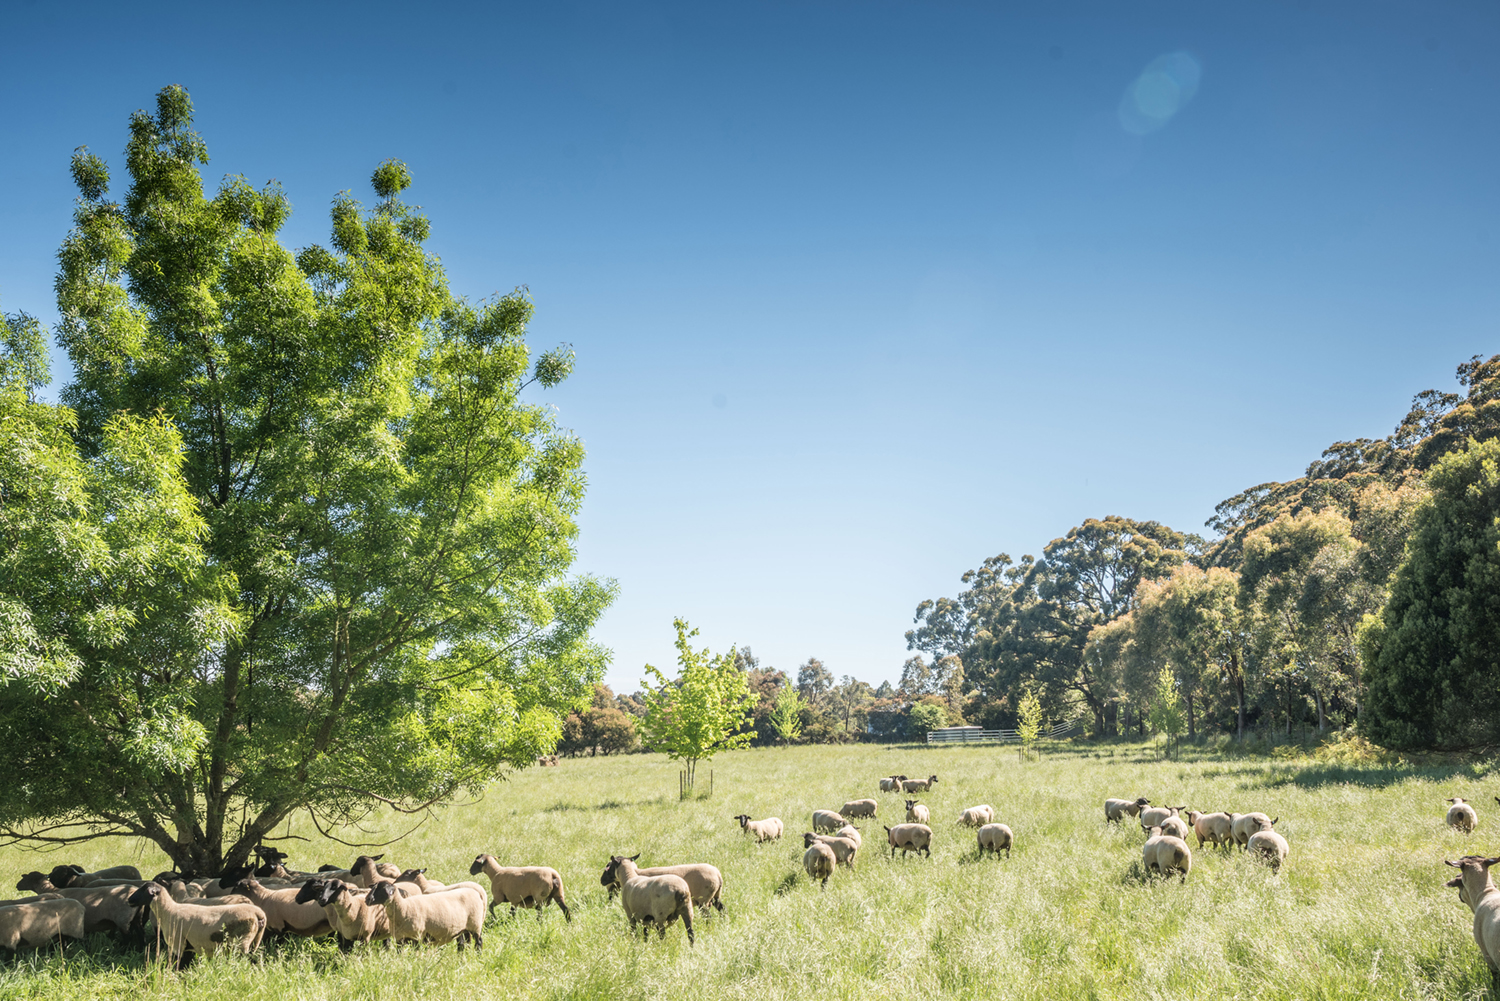 Suffolk sheep grazing at Oberon Stud, Musk, Victoria.